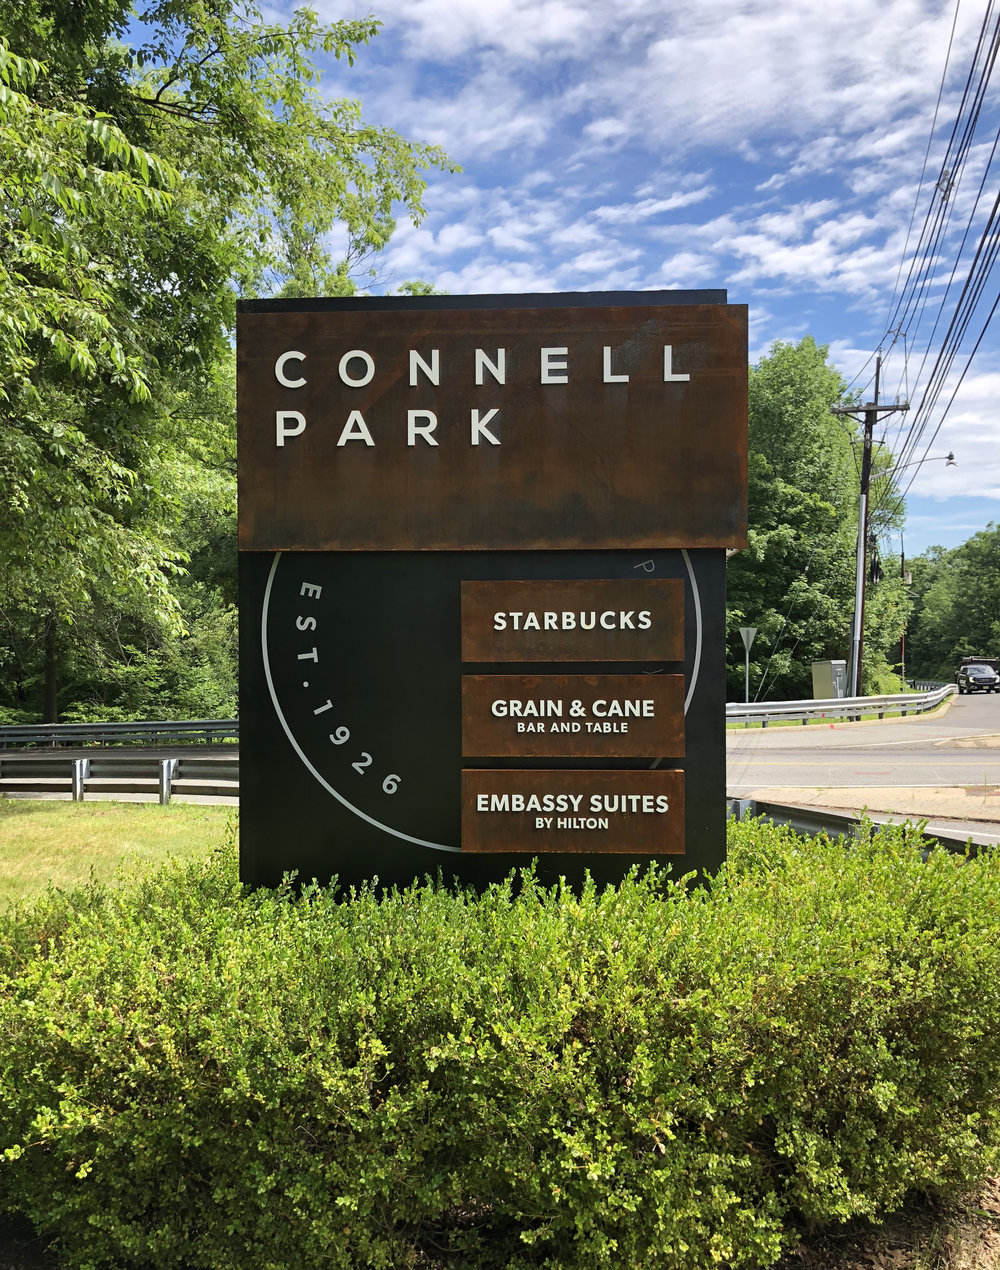 connellpark_resized_02.jpg